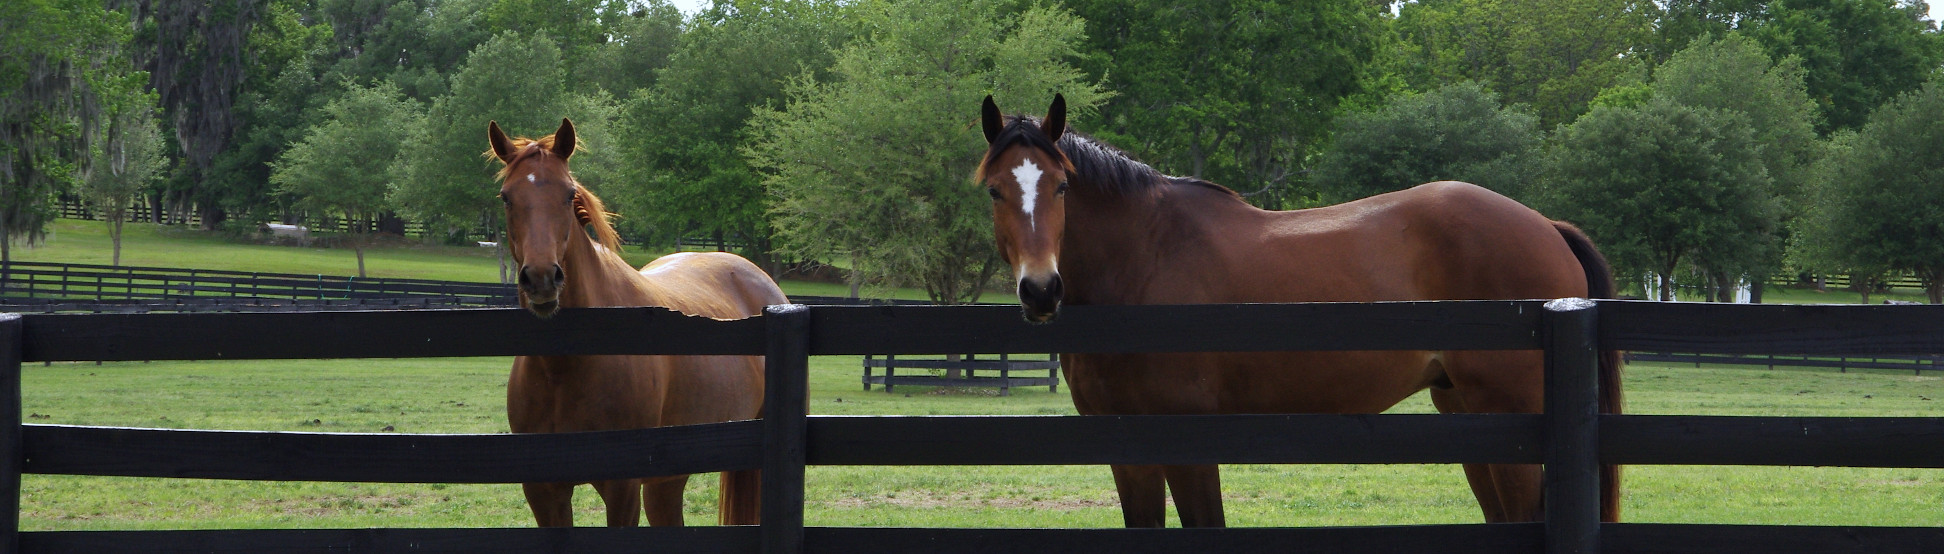 2 horses at fence